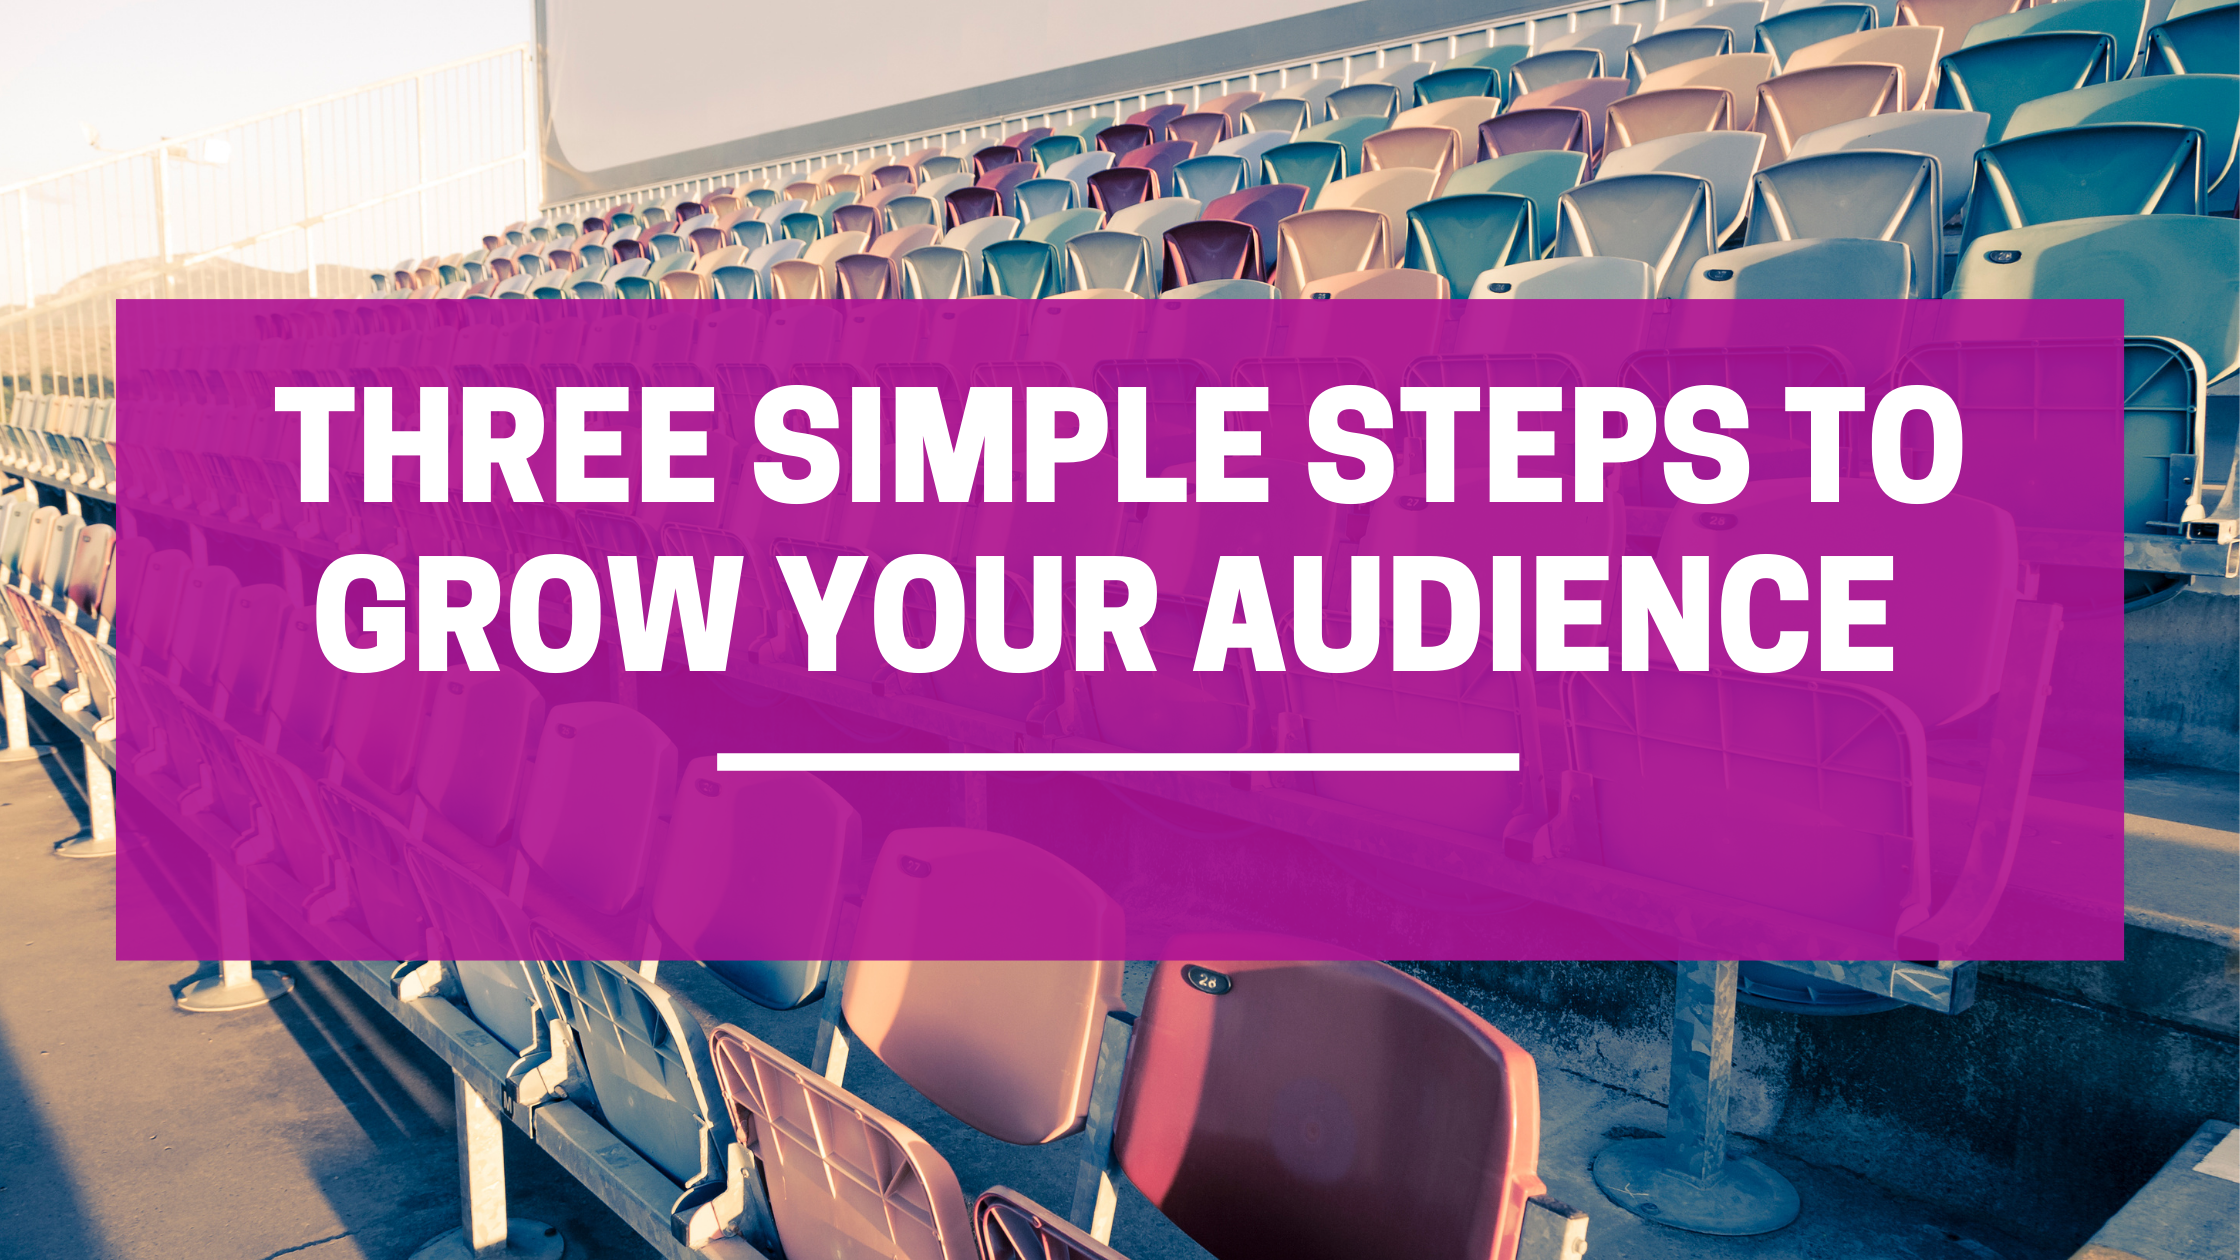 Three Simple Steps to grow your audience